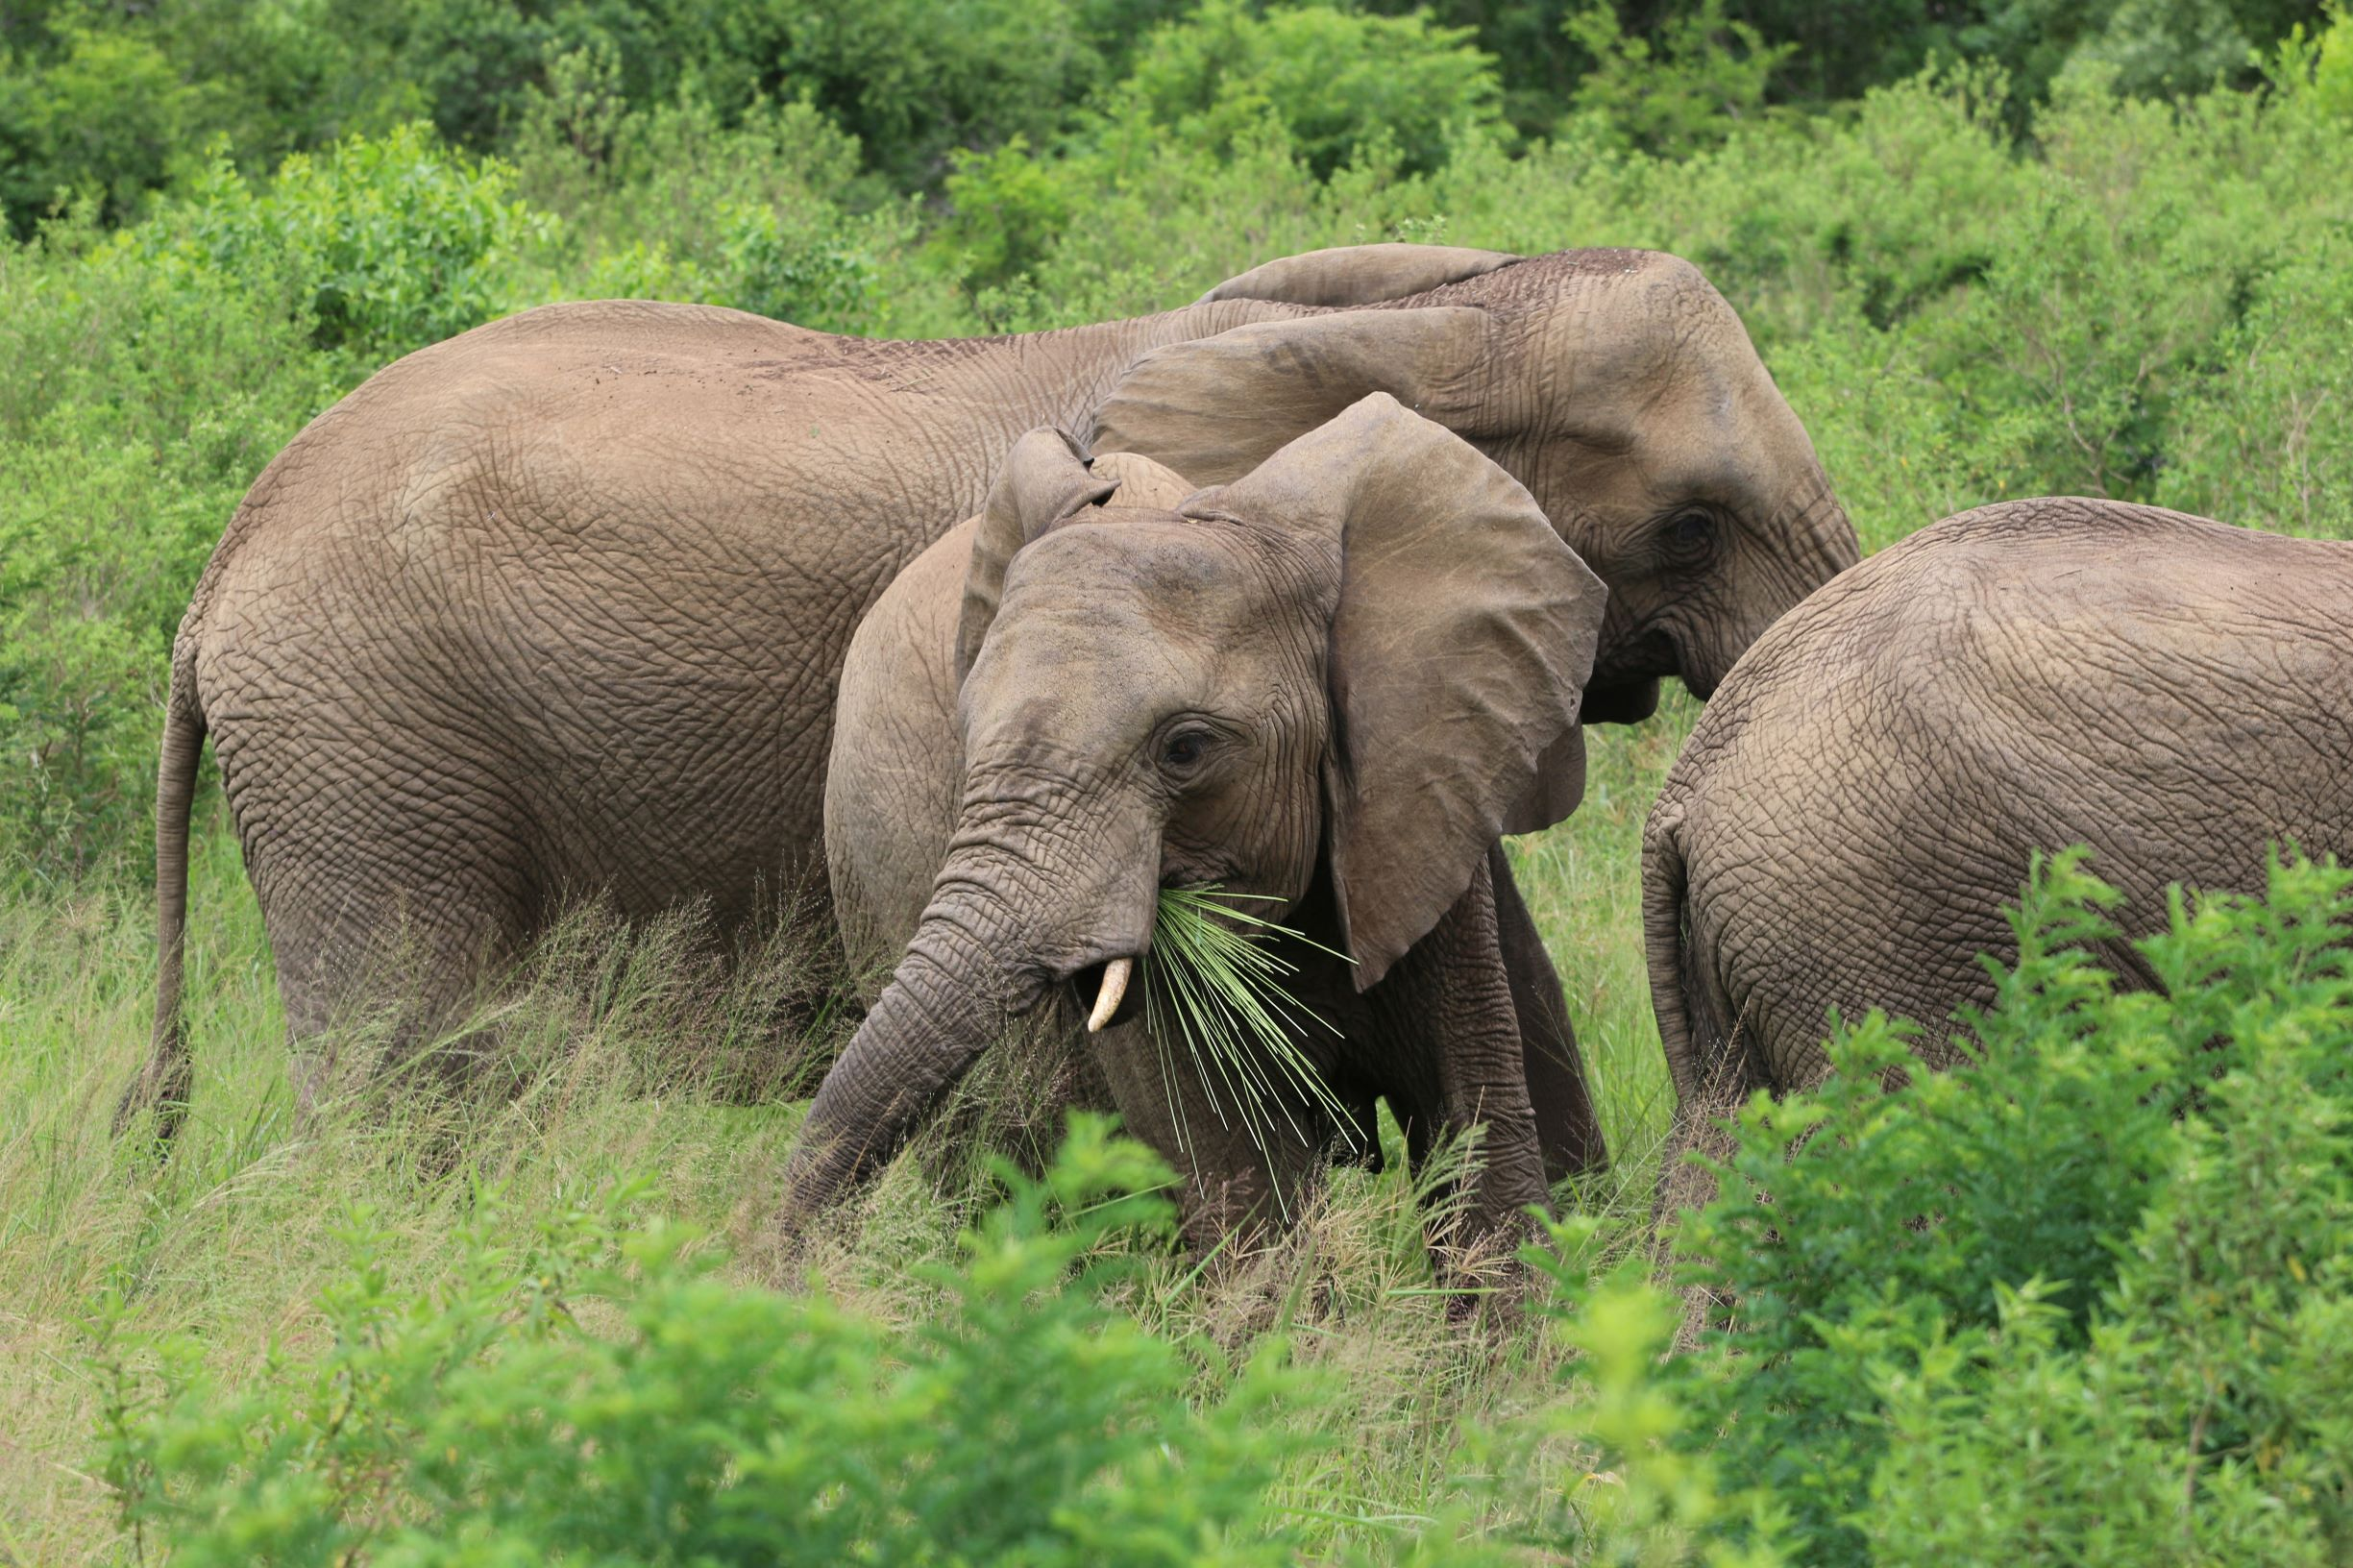 Elephants in Hluleka Game Reserve - Adrian O'Connor